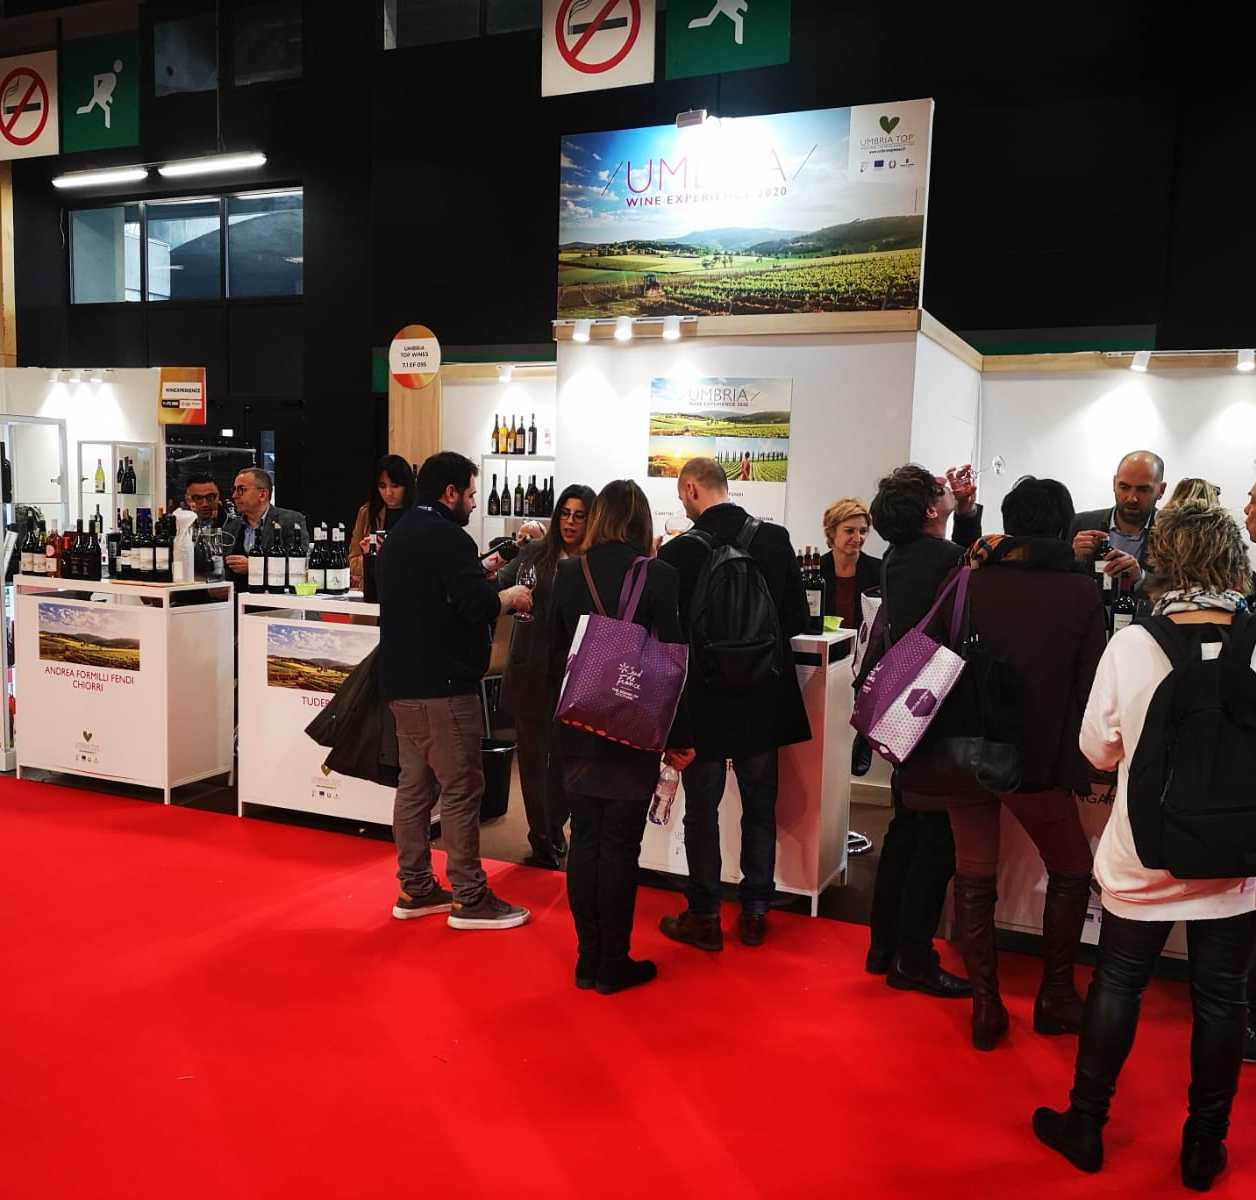 Umbria top Wine Paris-2